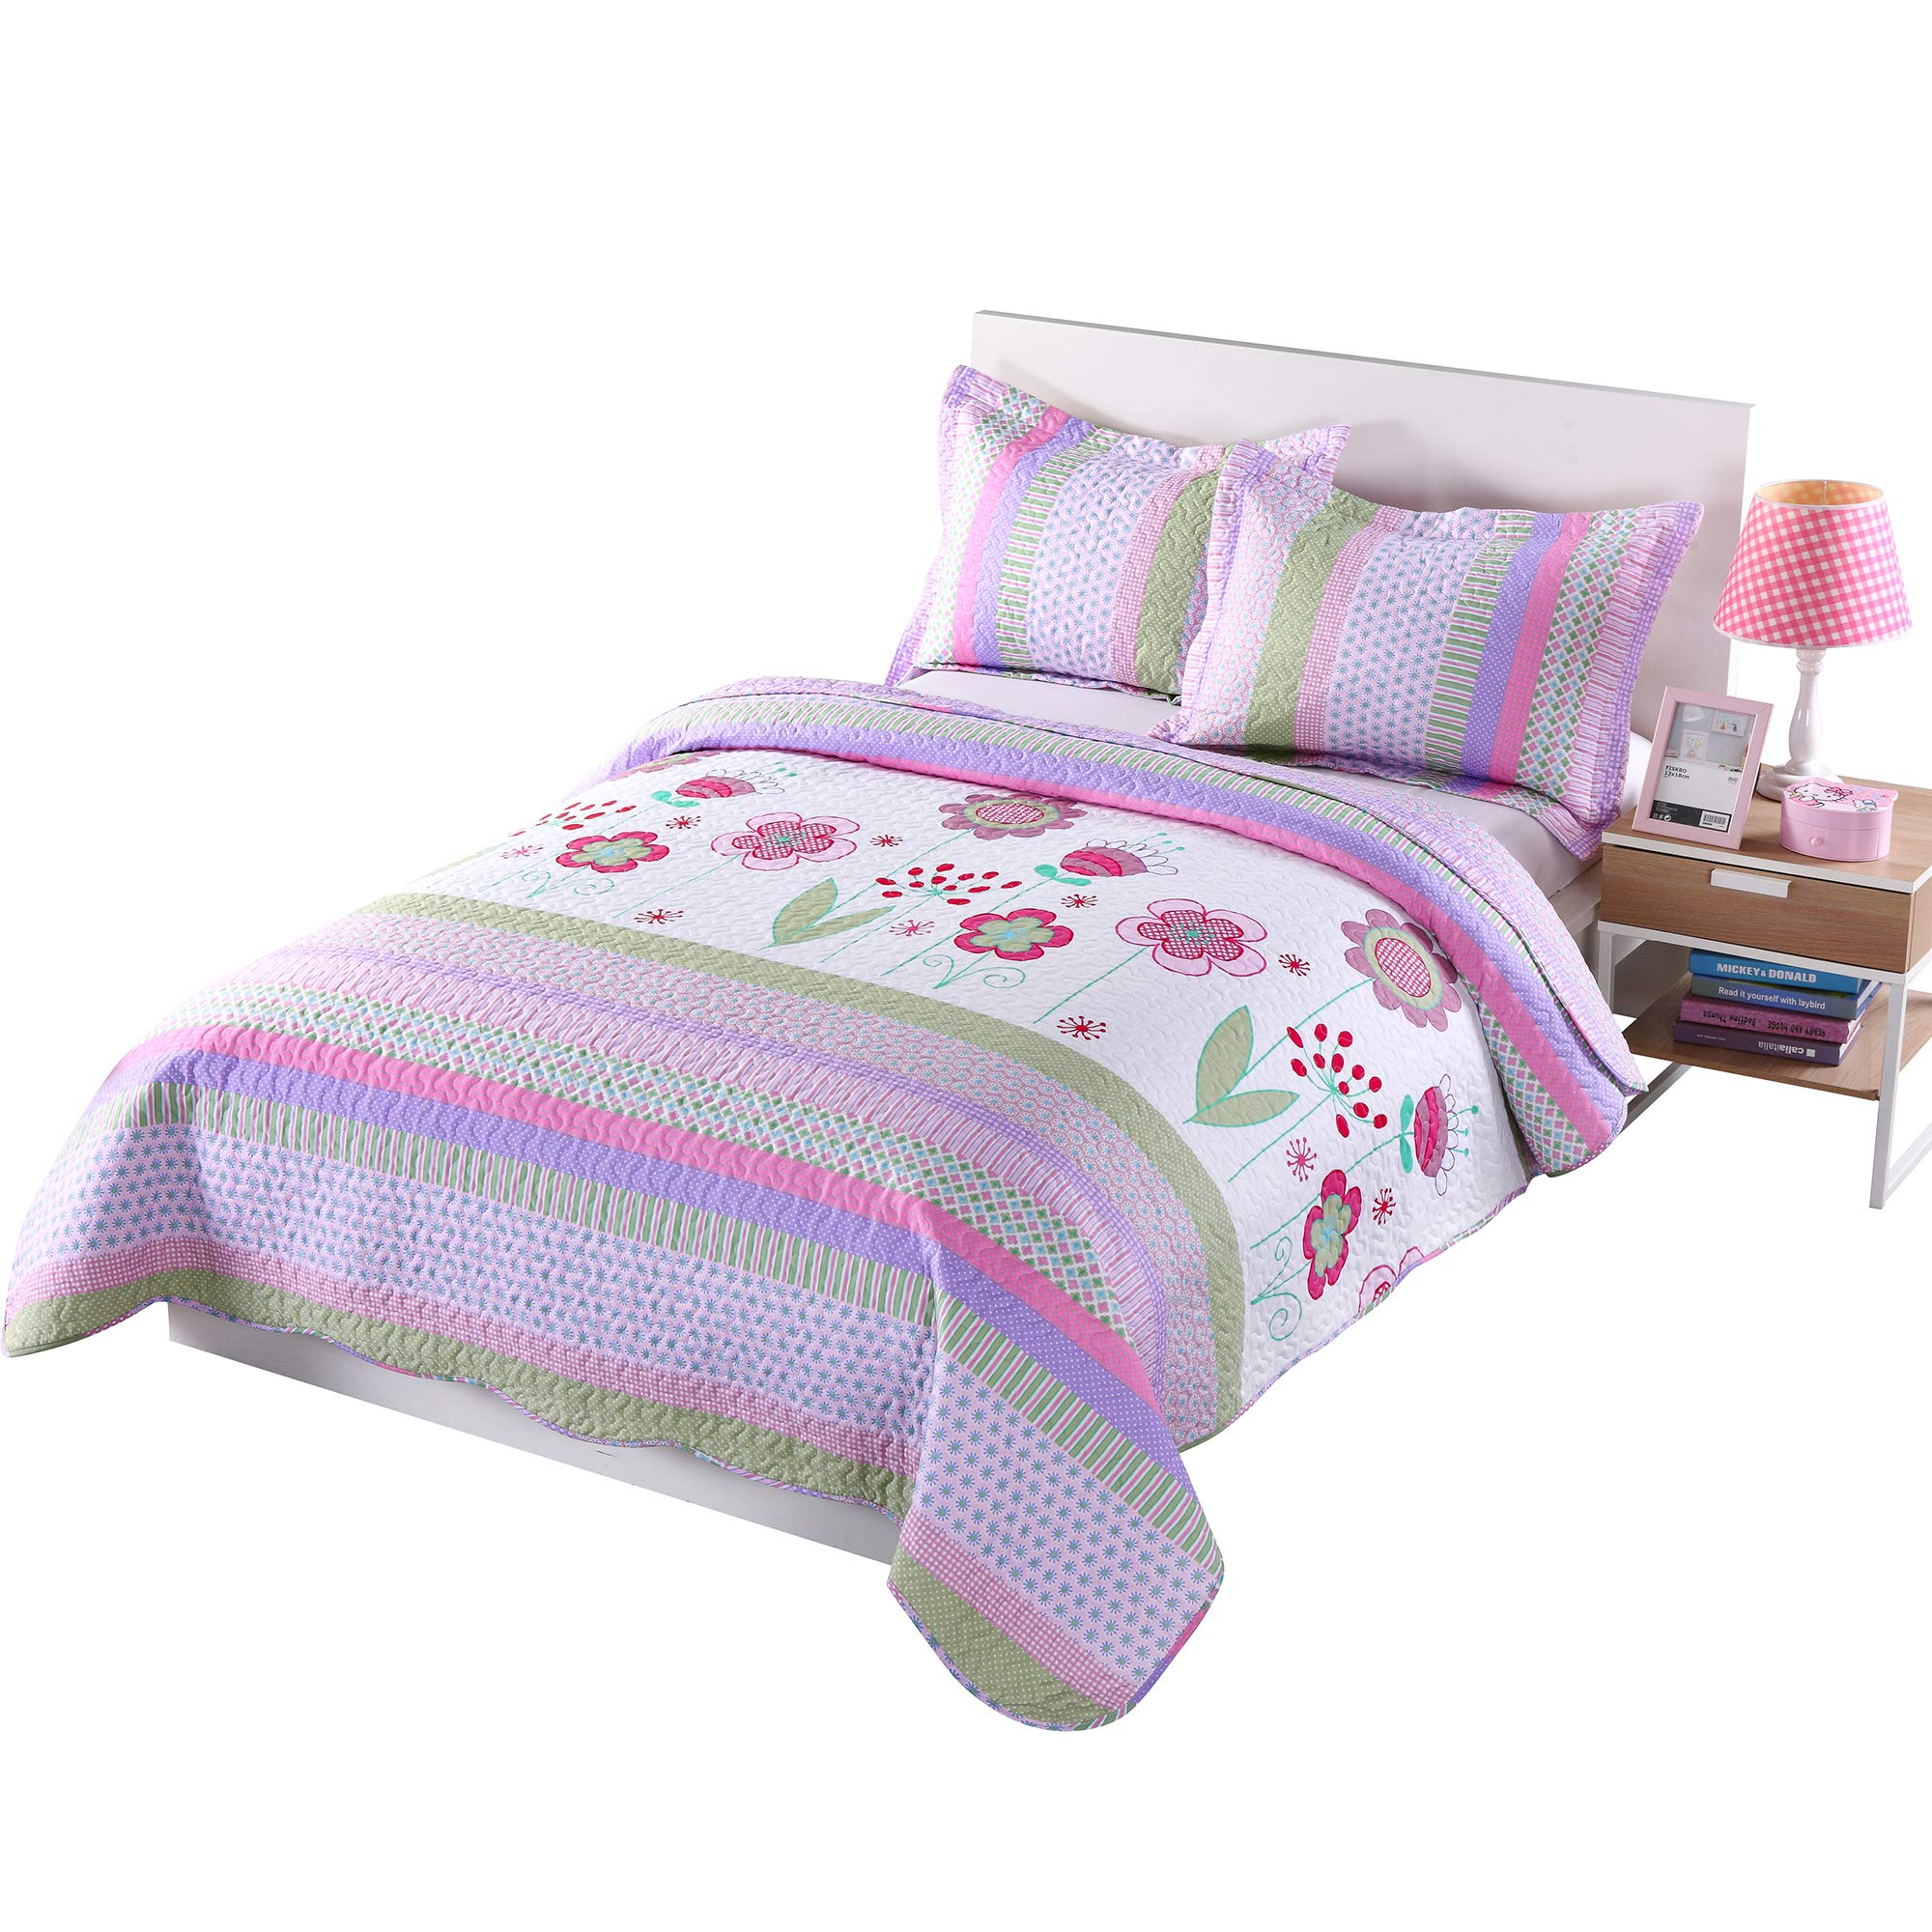 MarCielo 3 Piece Kids Bedspread Quilts Set Throw Blanket for Teens Girls Bed Printed Bedding Coverlet, Full Size, Purple Floral Striped (Full) by MarCielo